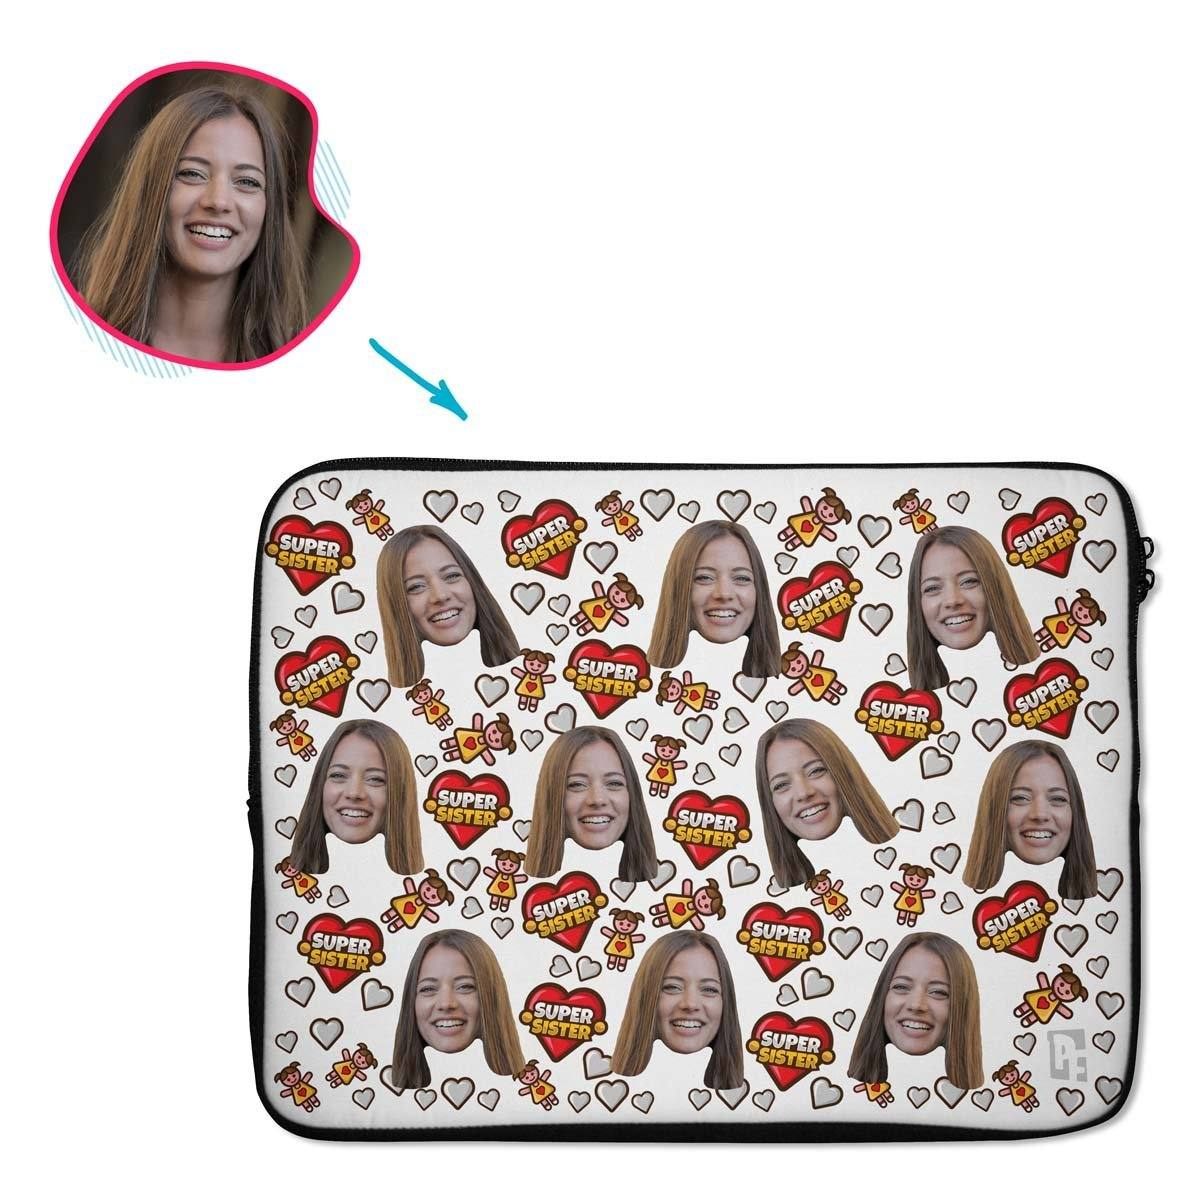 white Super Sister laptop sleeve personalized with photo of face printed on them